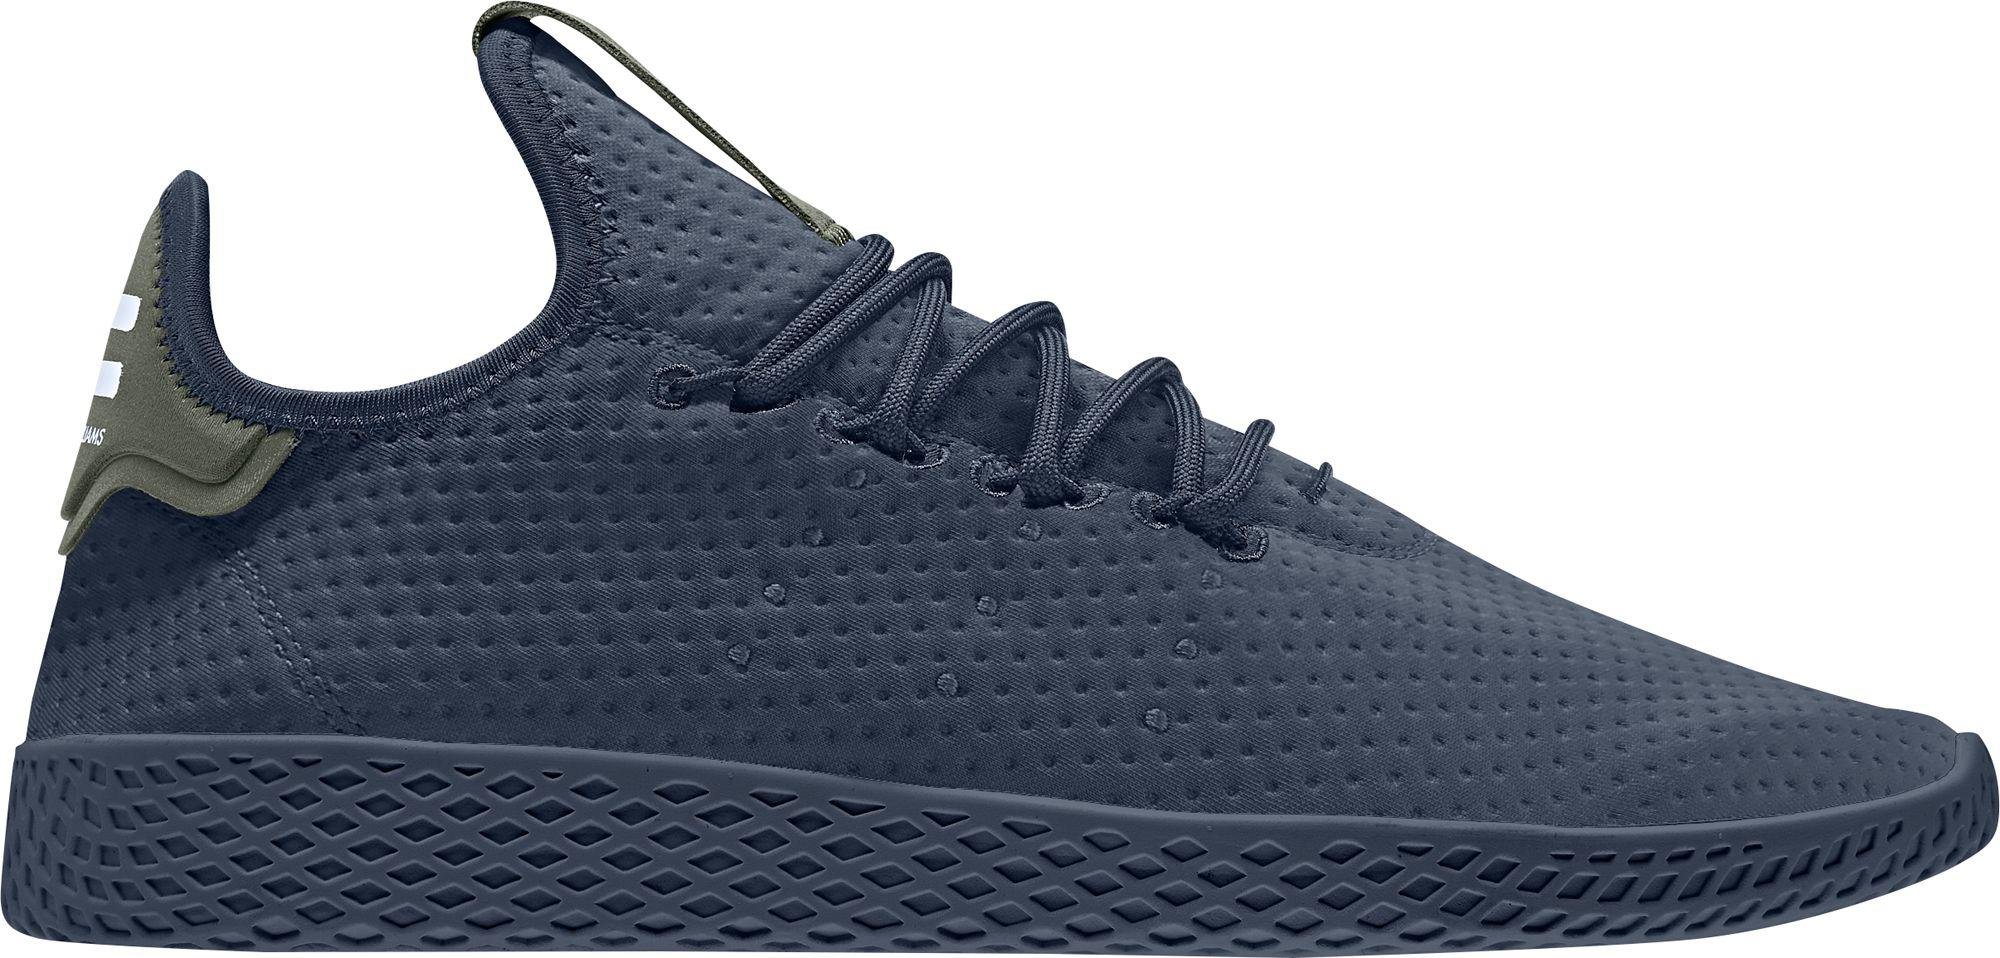 cbc89d3a86a2f Lyst - adidas Originals Pharrell Williams Tennis Hu Shoes in Blue ...